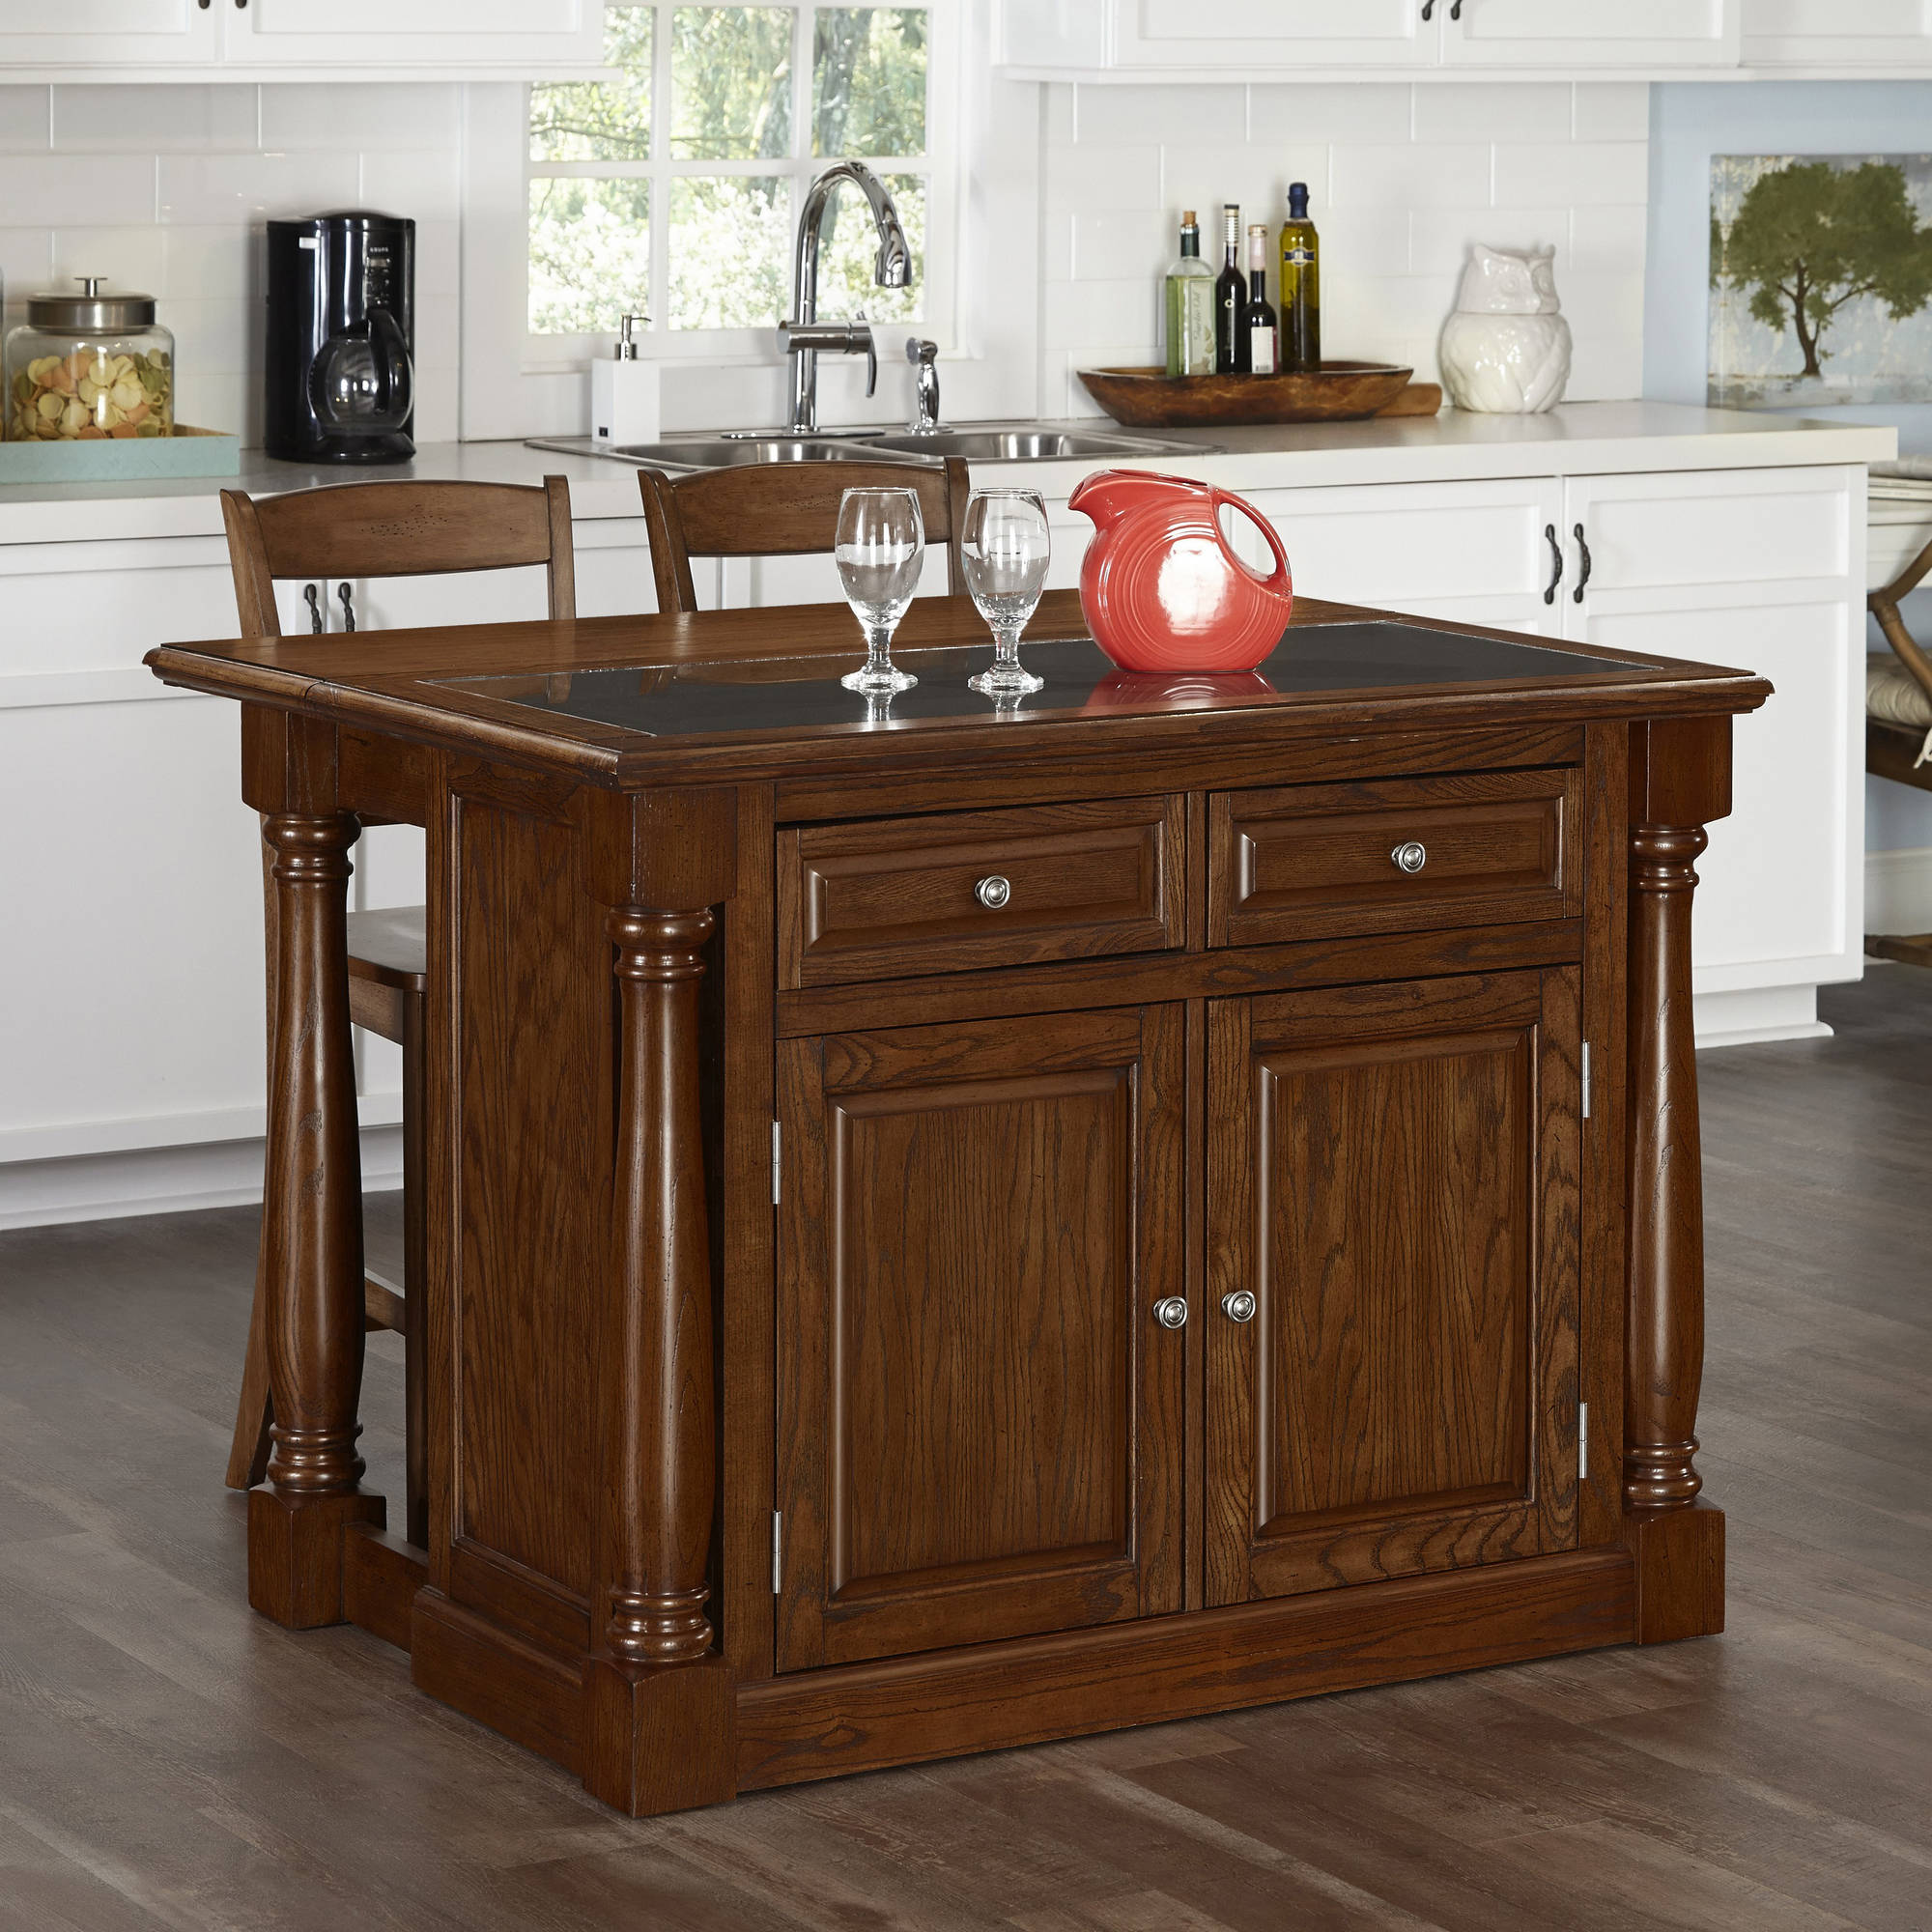 home styles monarch kitchen island home styles monarch oak kitchen island and 2 stools 24121